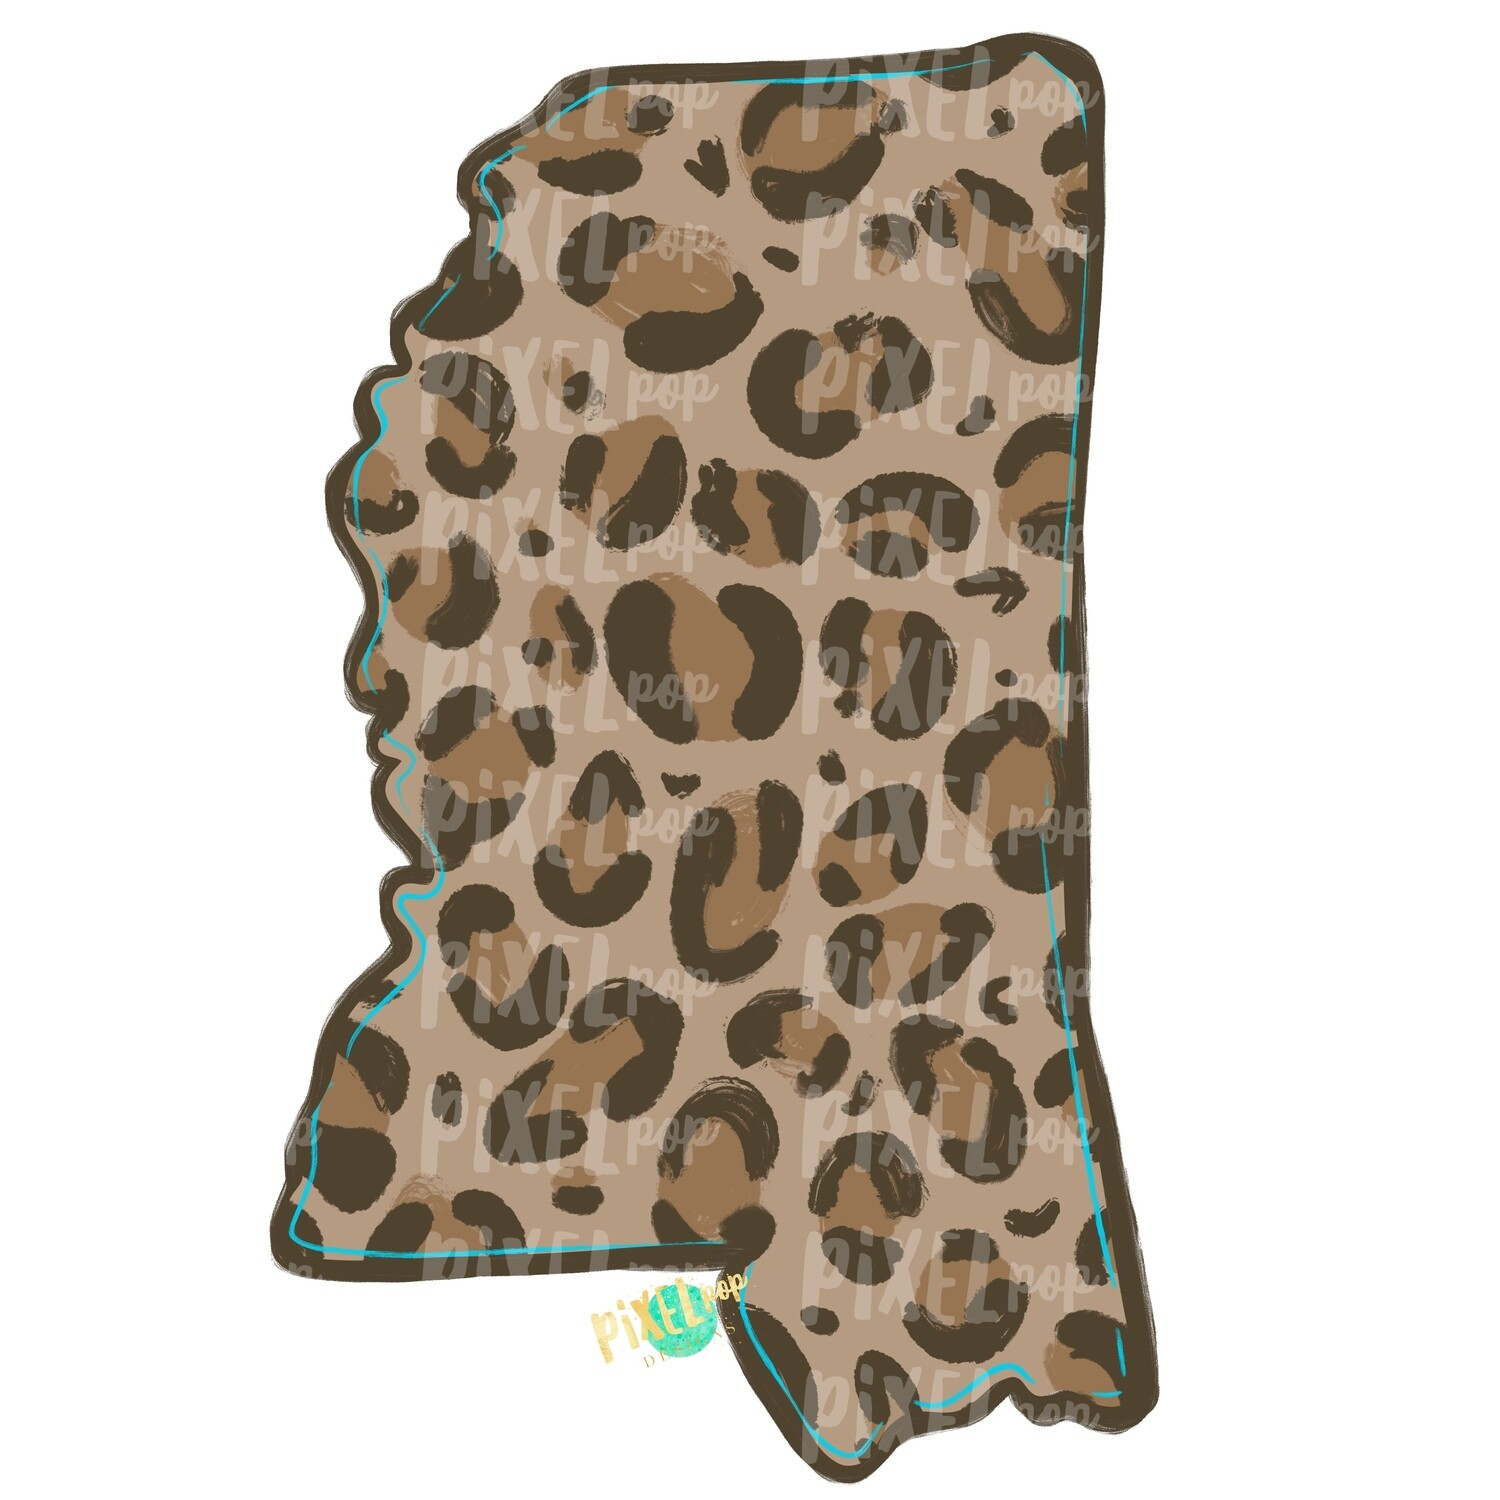 State of Mississippi Shape Turquoise and Leopard PNG | Mississippi | Home State | Sublimation Design | Heat Transfer | Digital | Leopard Print